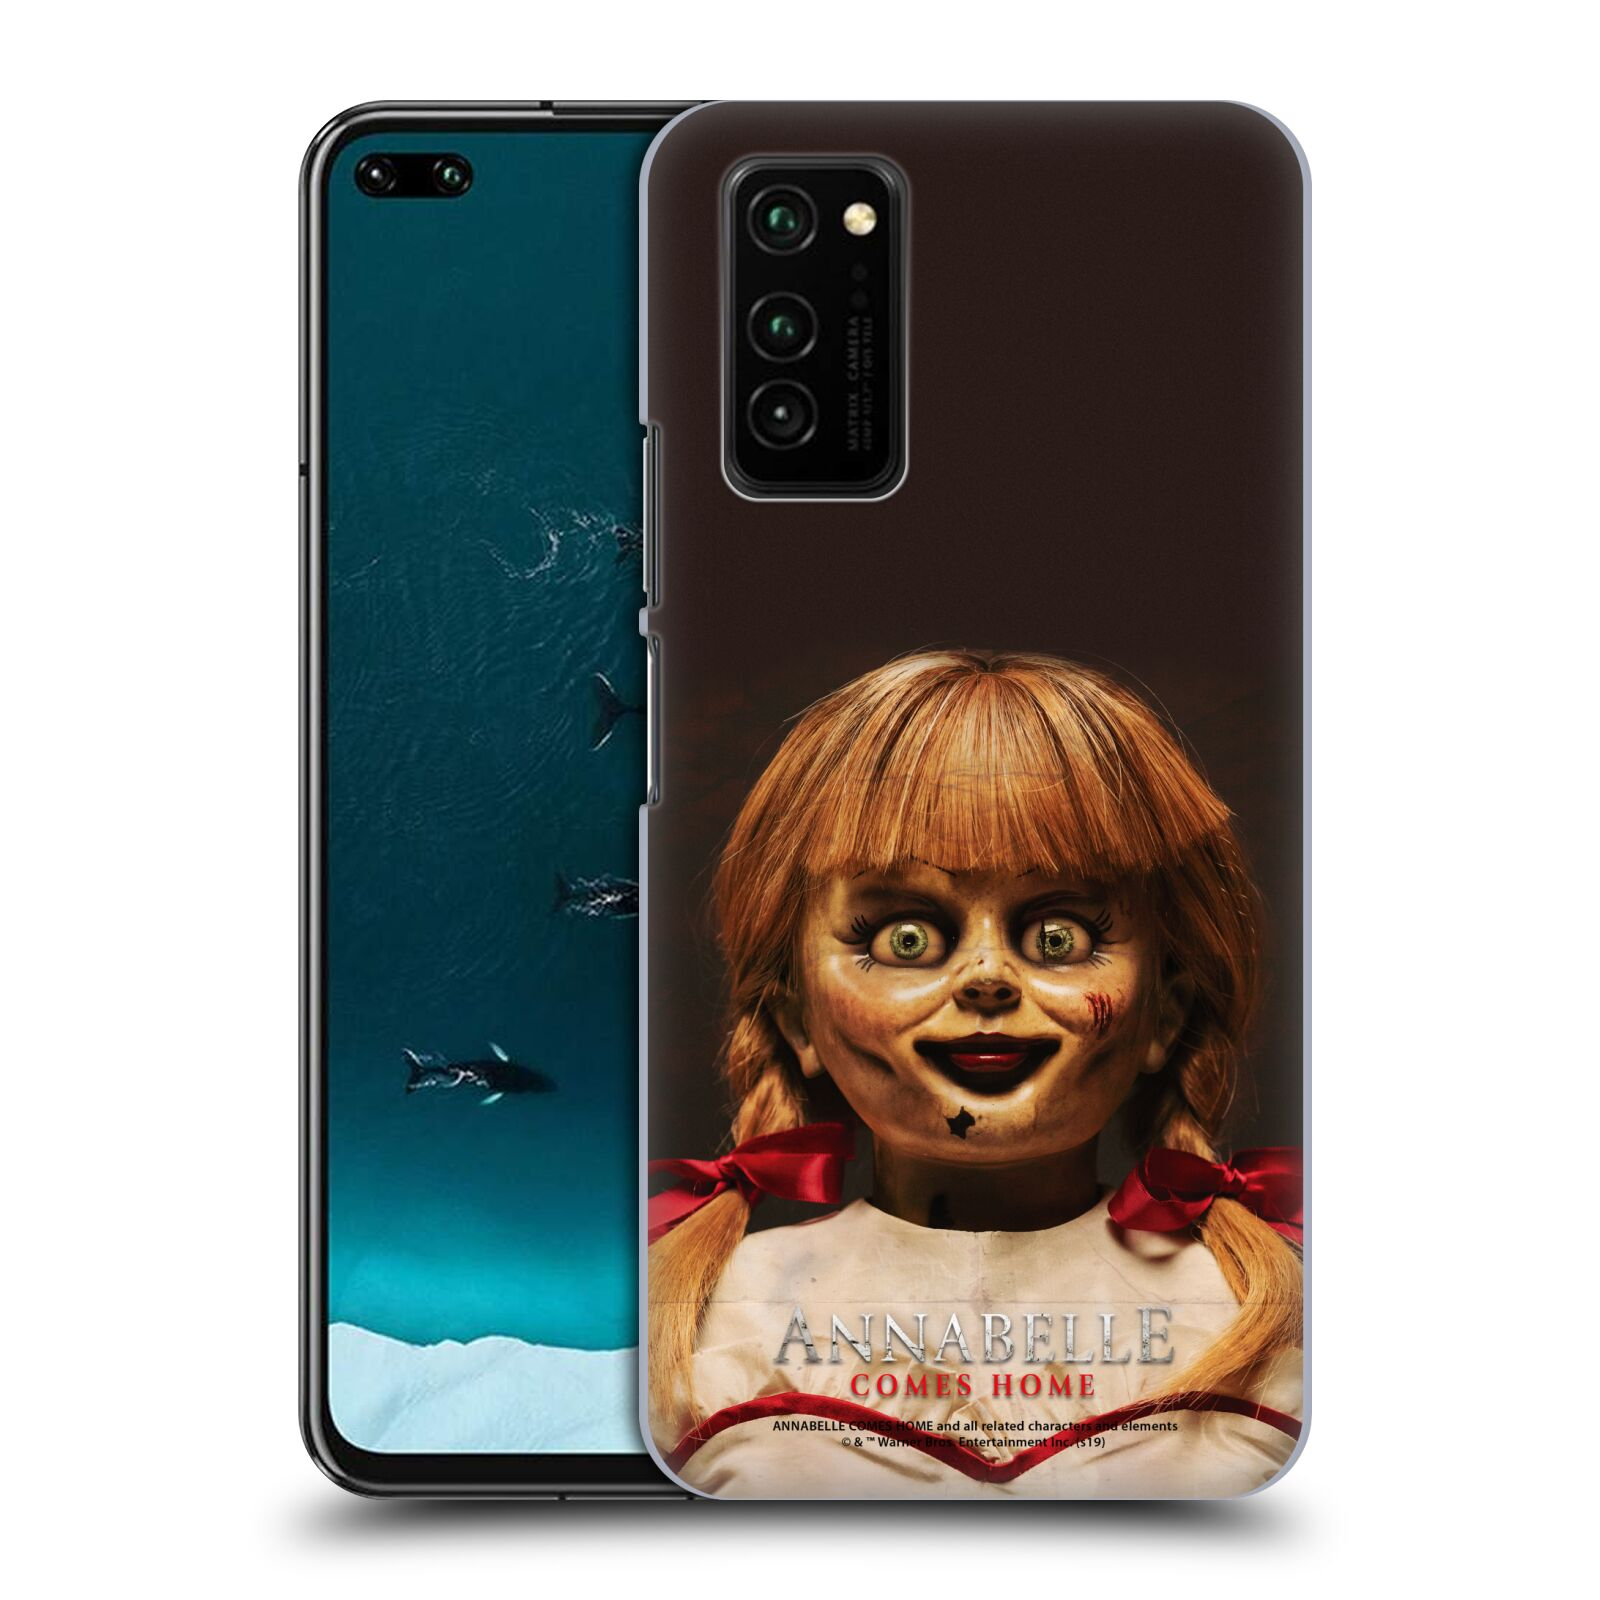 Official Annabelle Comes Home Doll Photography Portrait Case for Huawei Honor V30 / Honor View 30